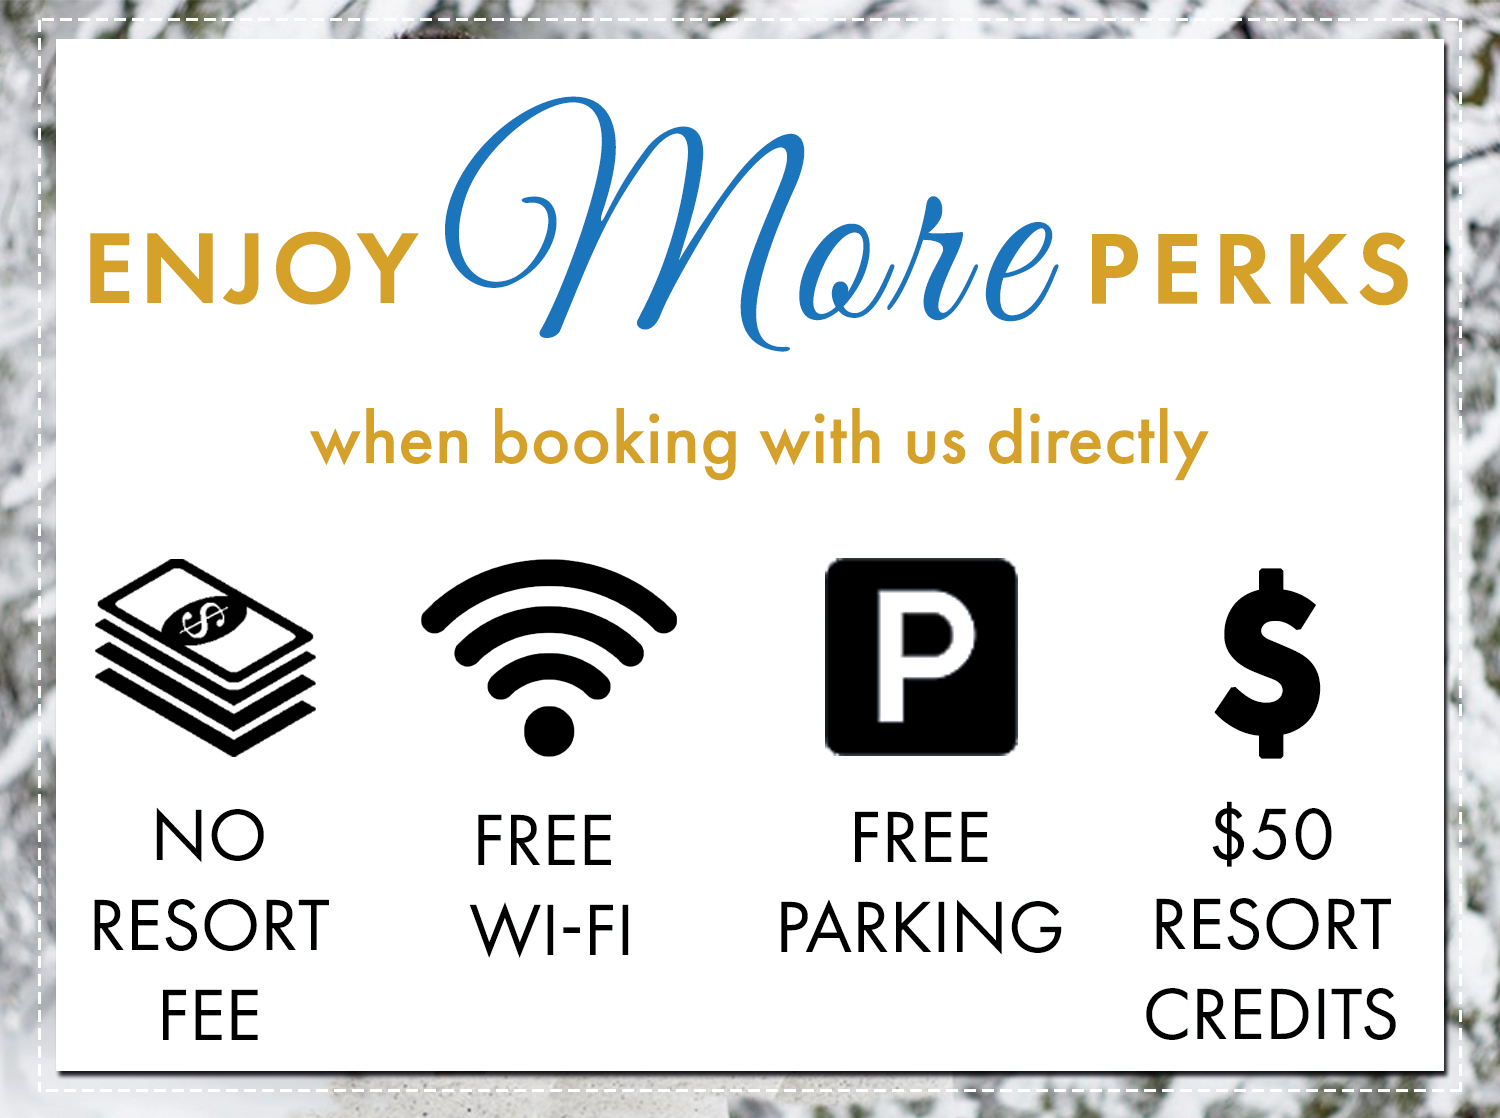 enjoy more perks when booking with us directly